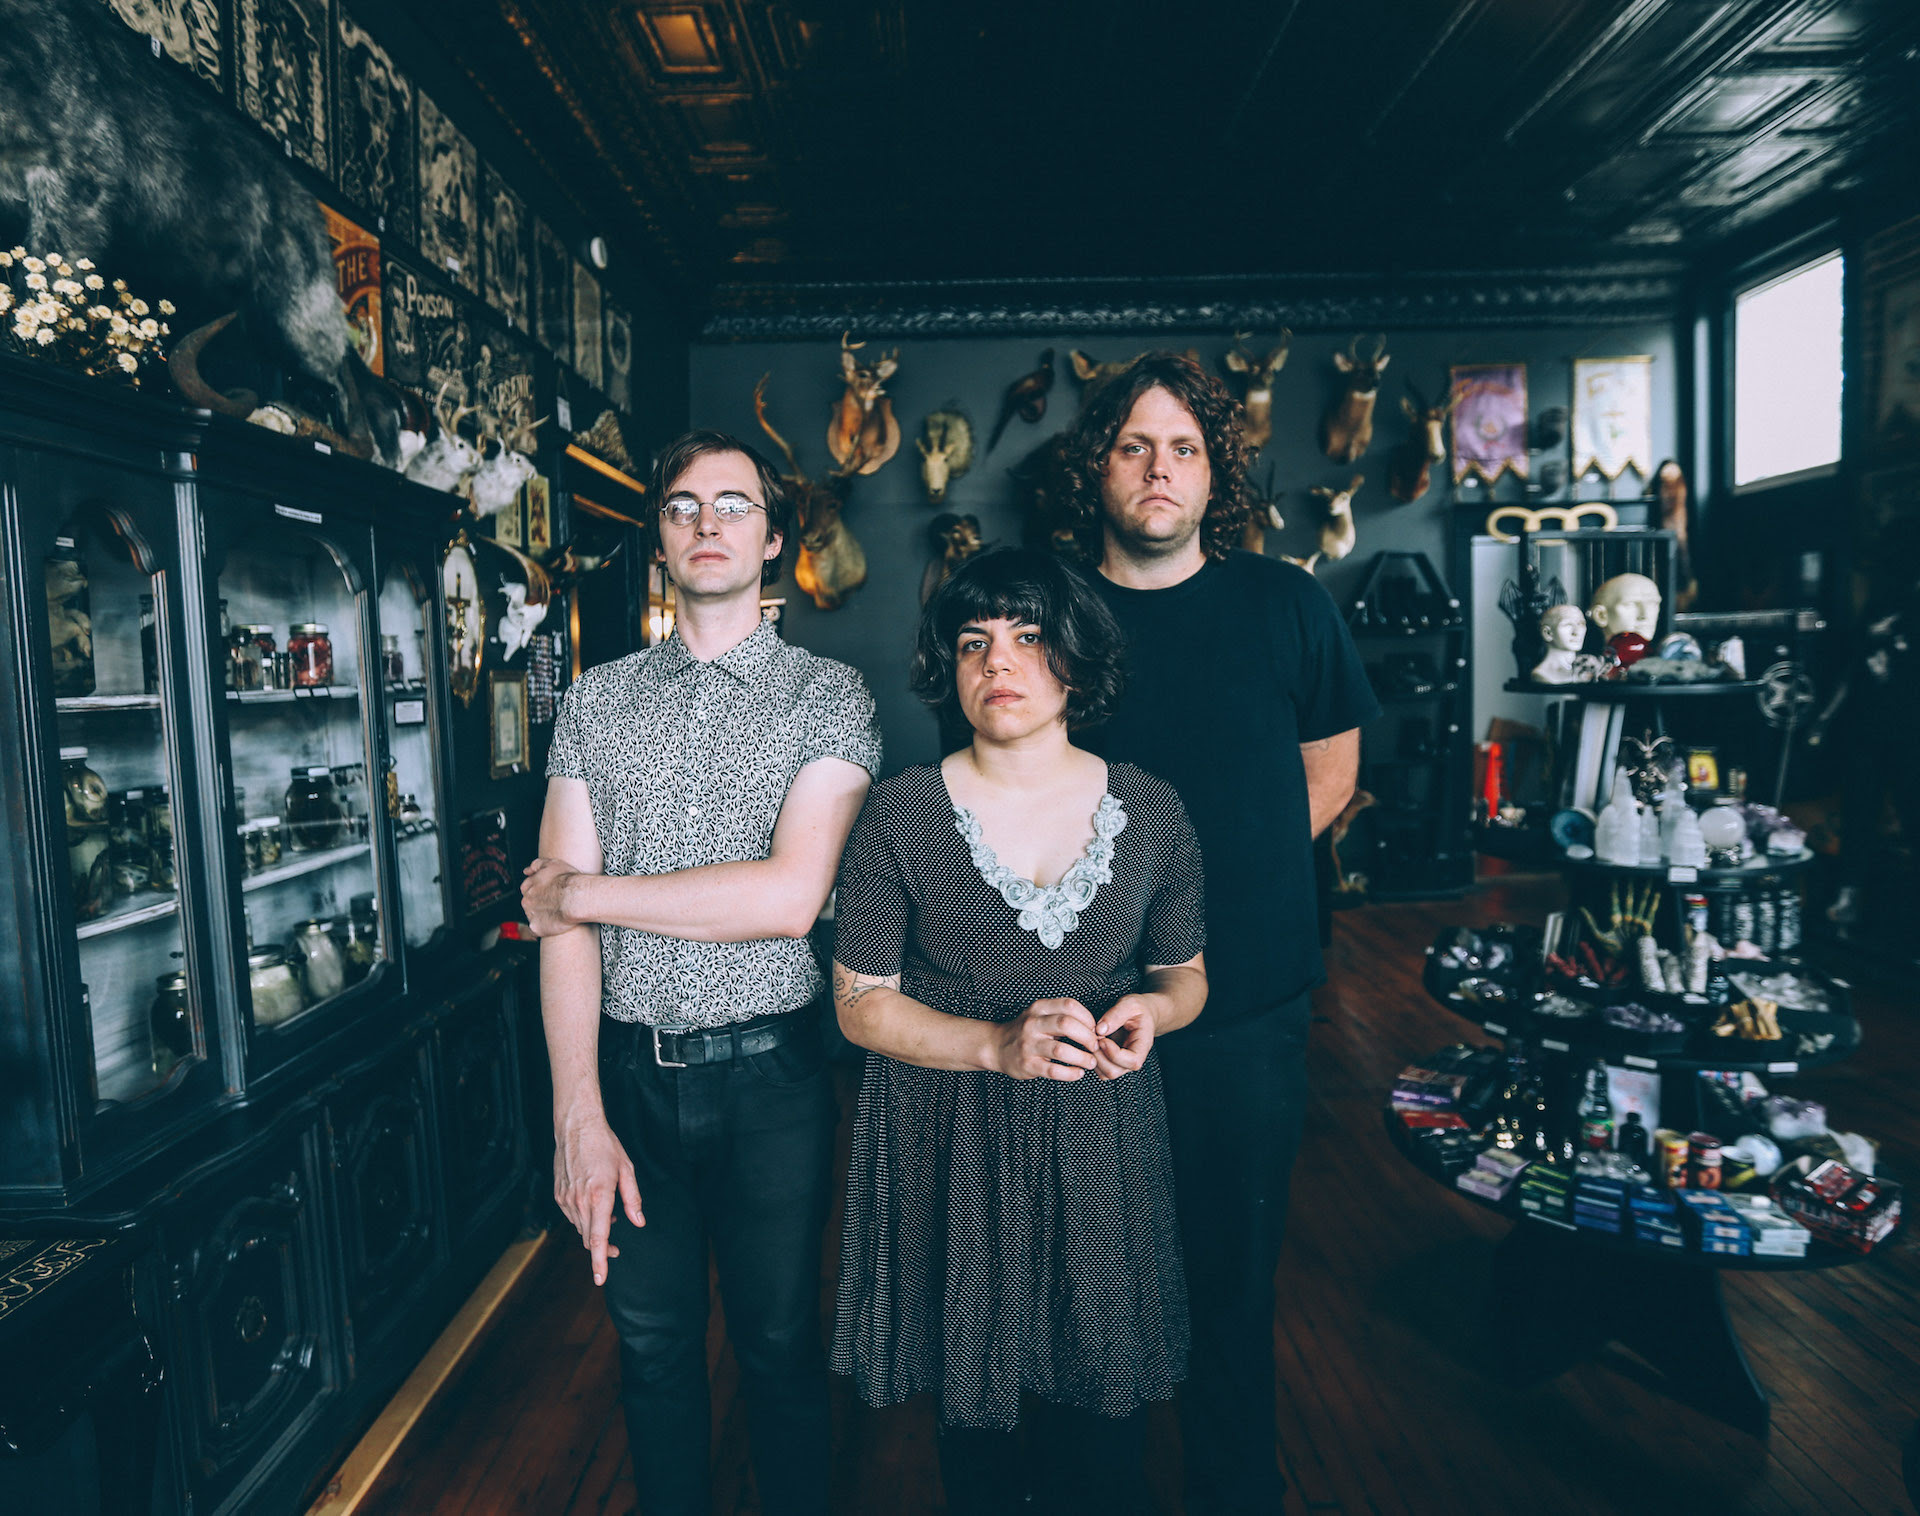 Screaming Females, photo by Farrah Skeiky